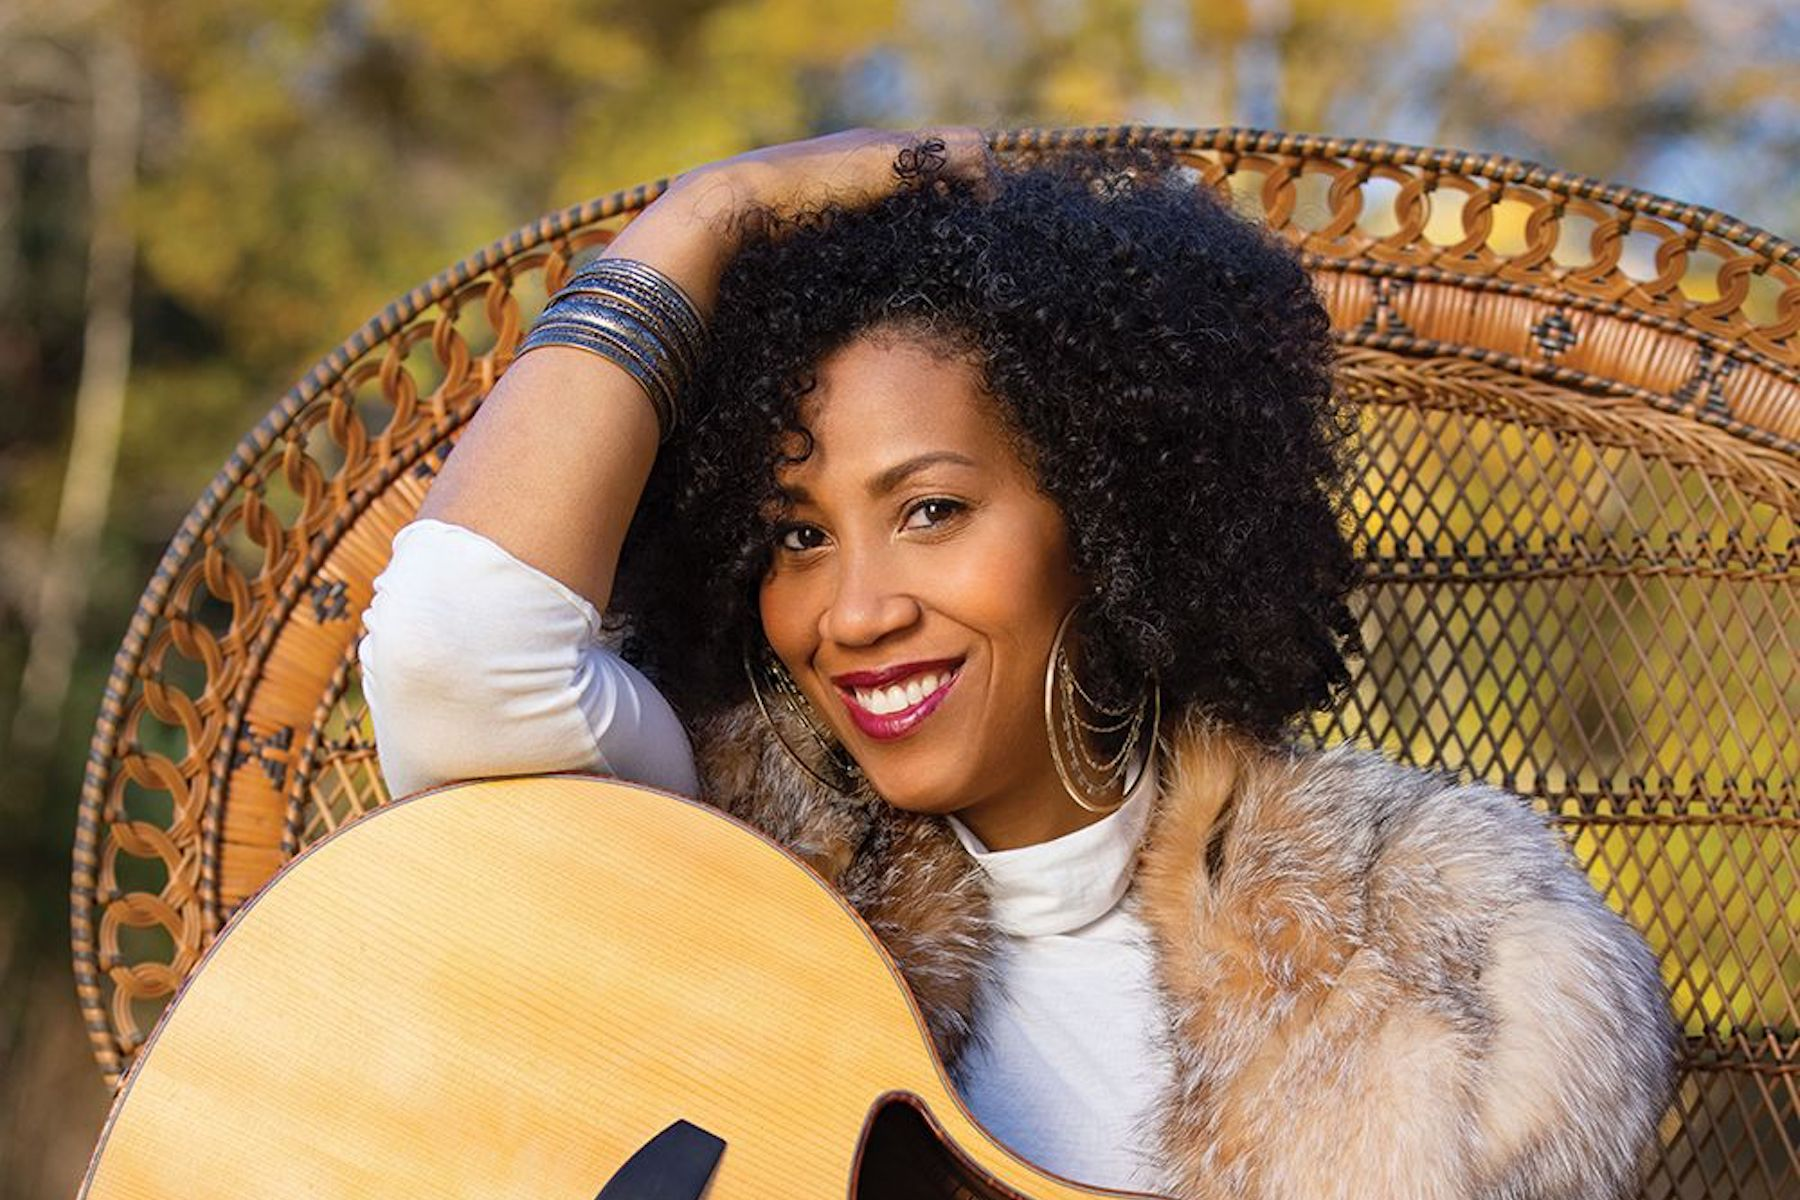 Rissi Palmer sits in a wicker chair holding her guitar. Photo by Samantha Everette.